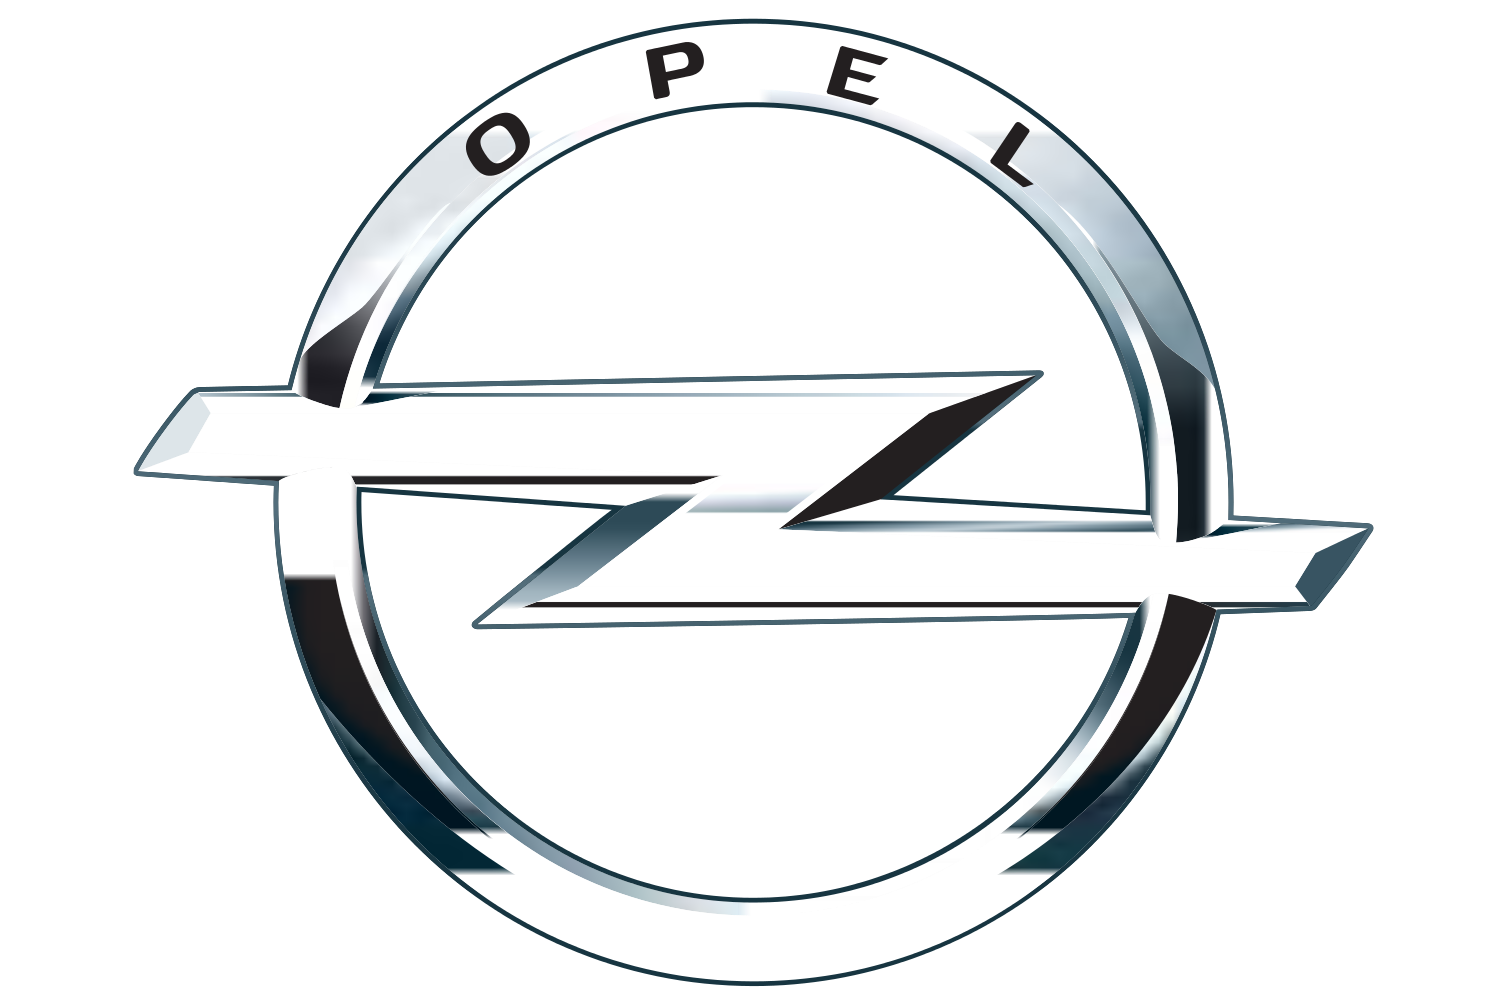 Car Logos Names >> Opel Logo, Opel Car Symbol and History | Car Brand Names.com